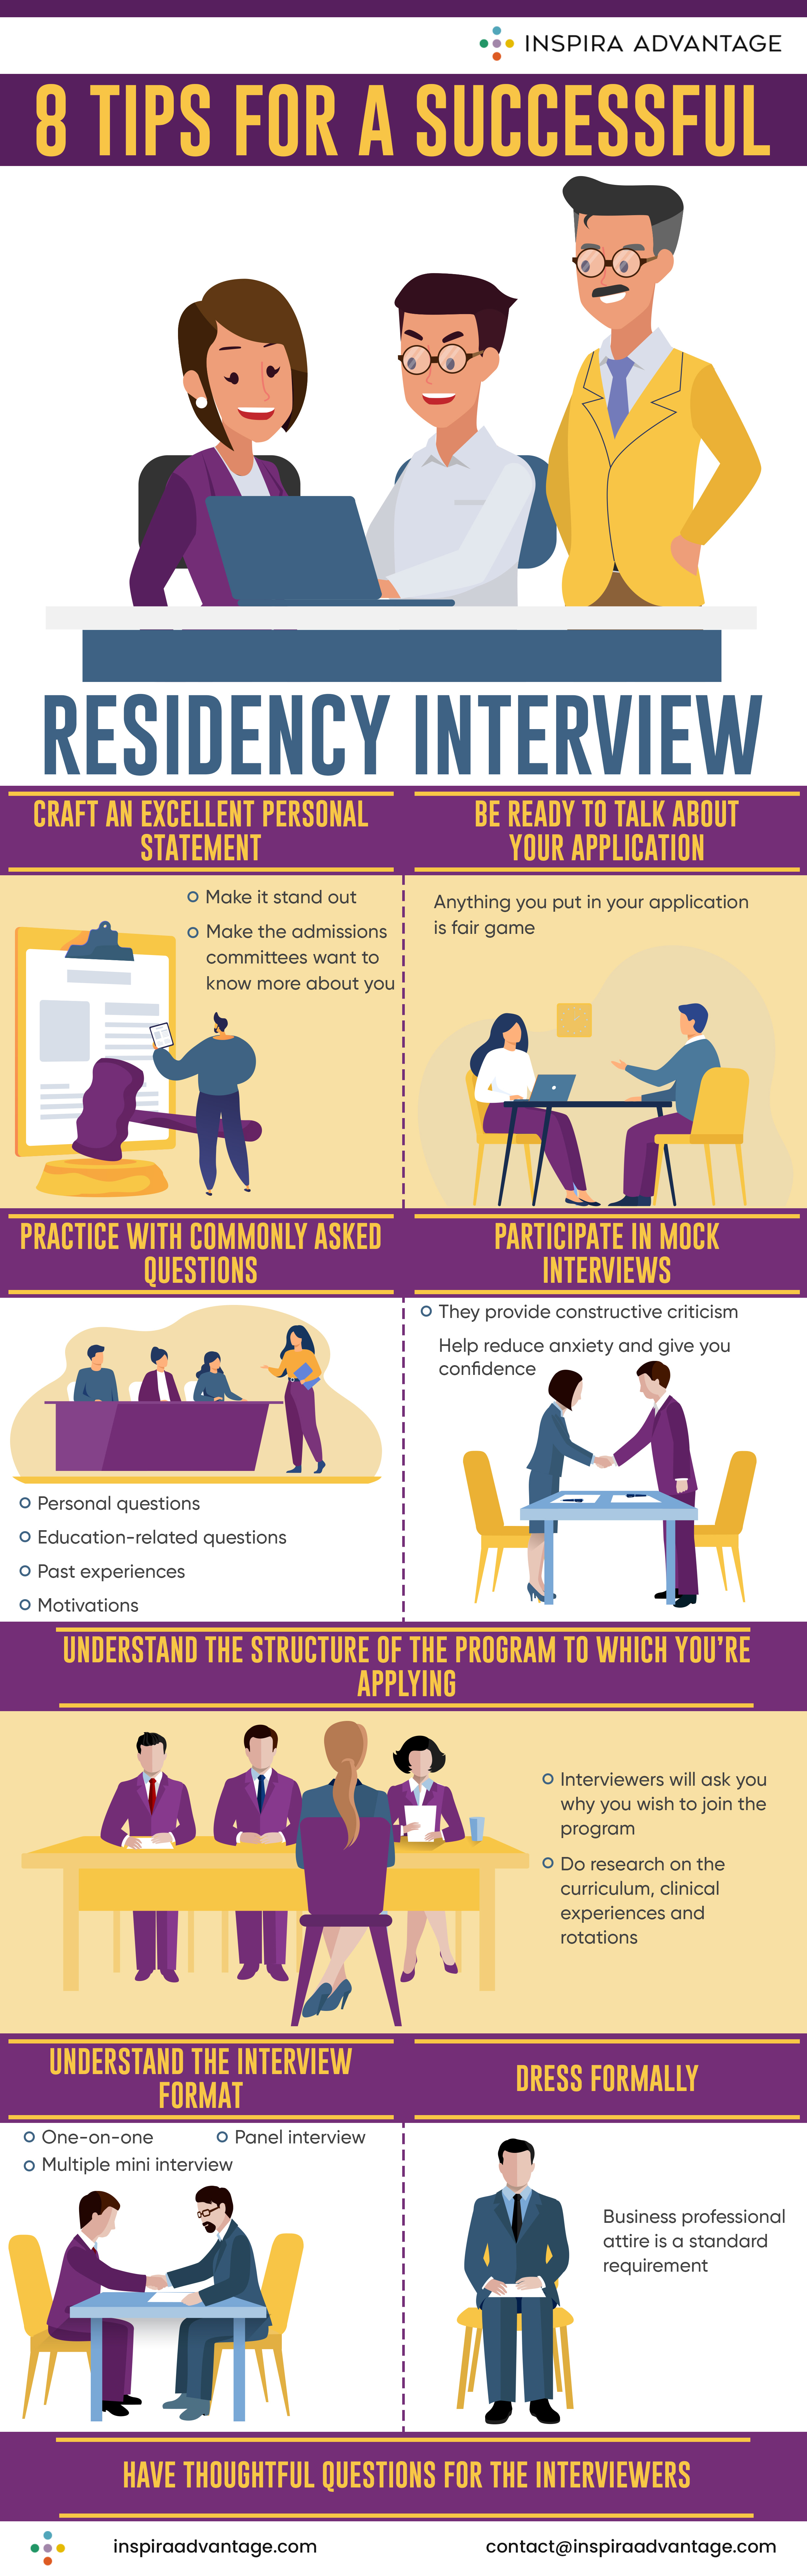 Tips for a successful residency interview